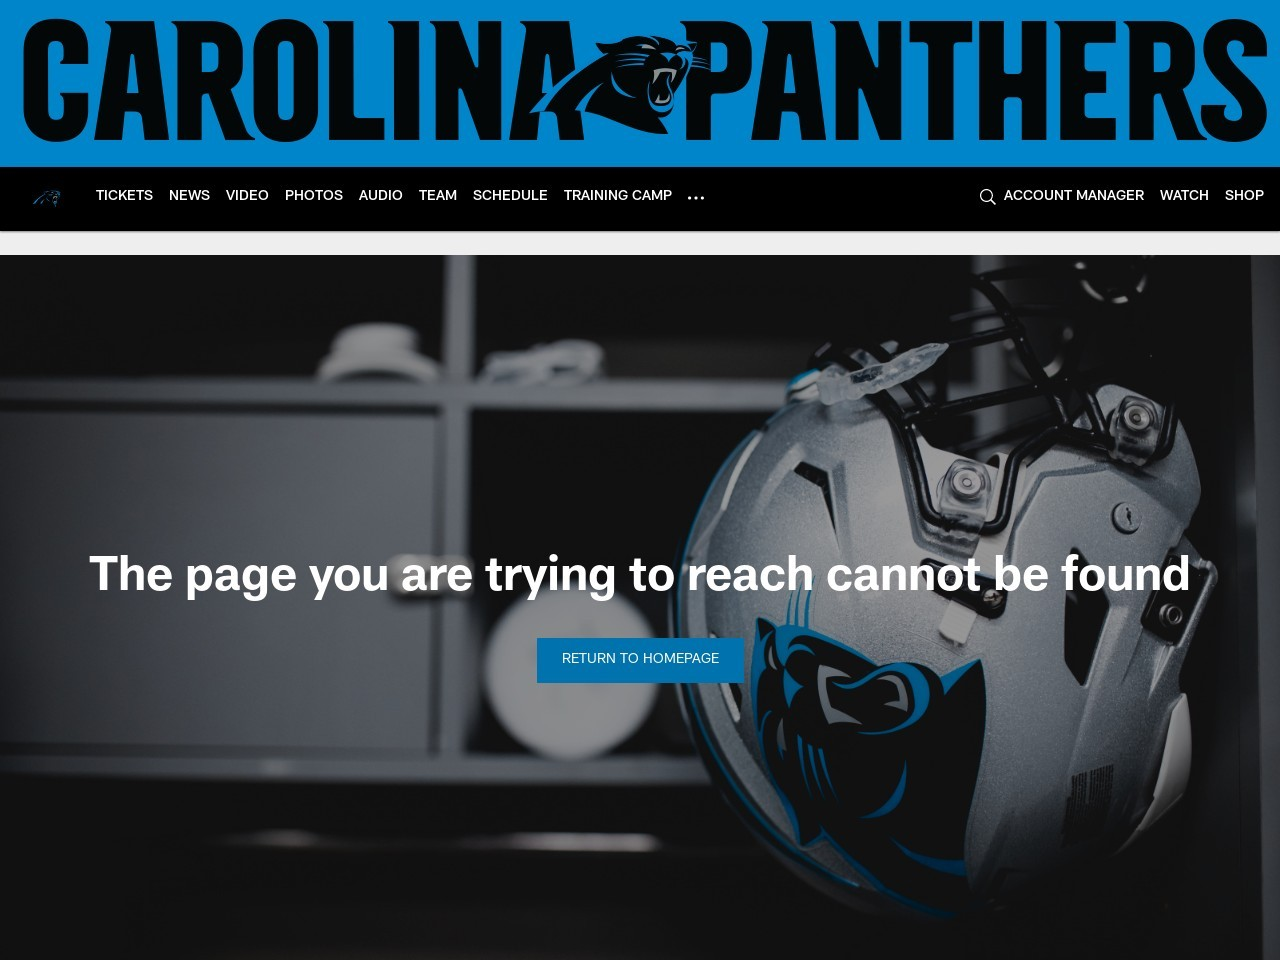 Panthers coaches comment on facing Josh Norman